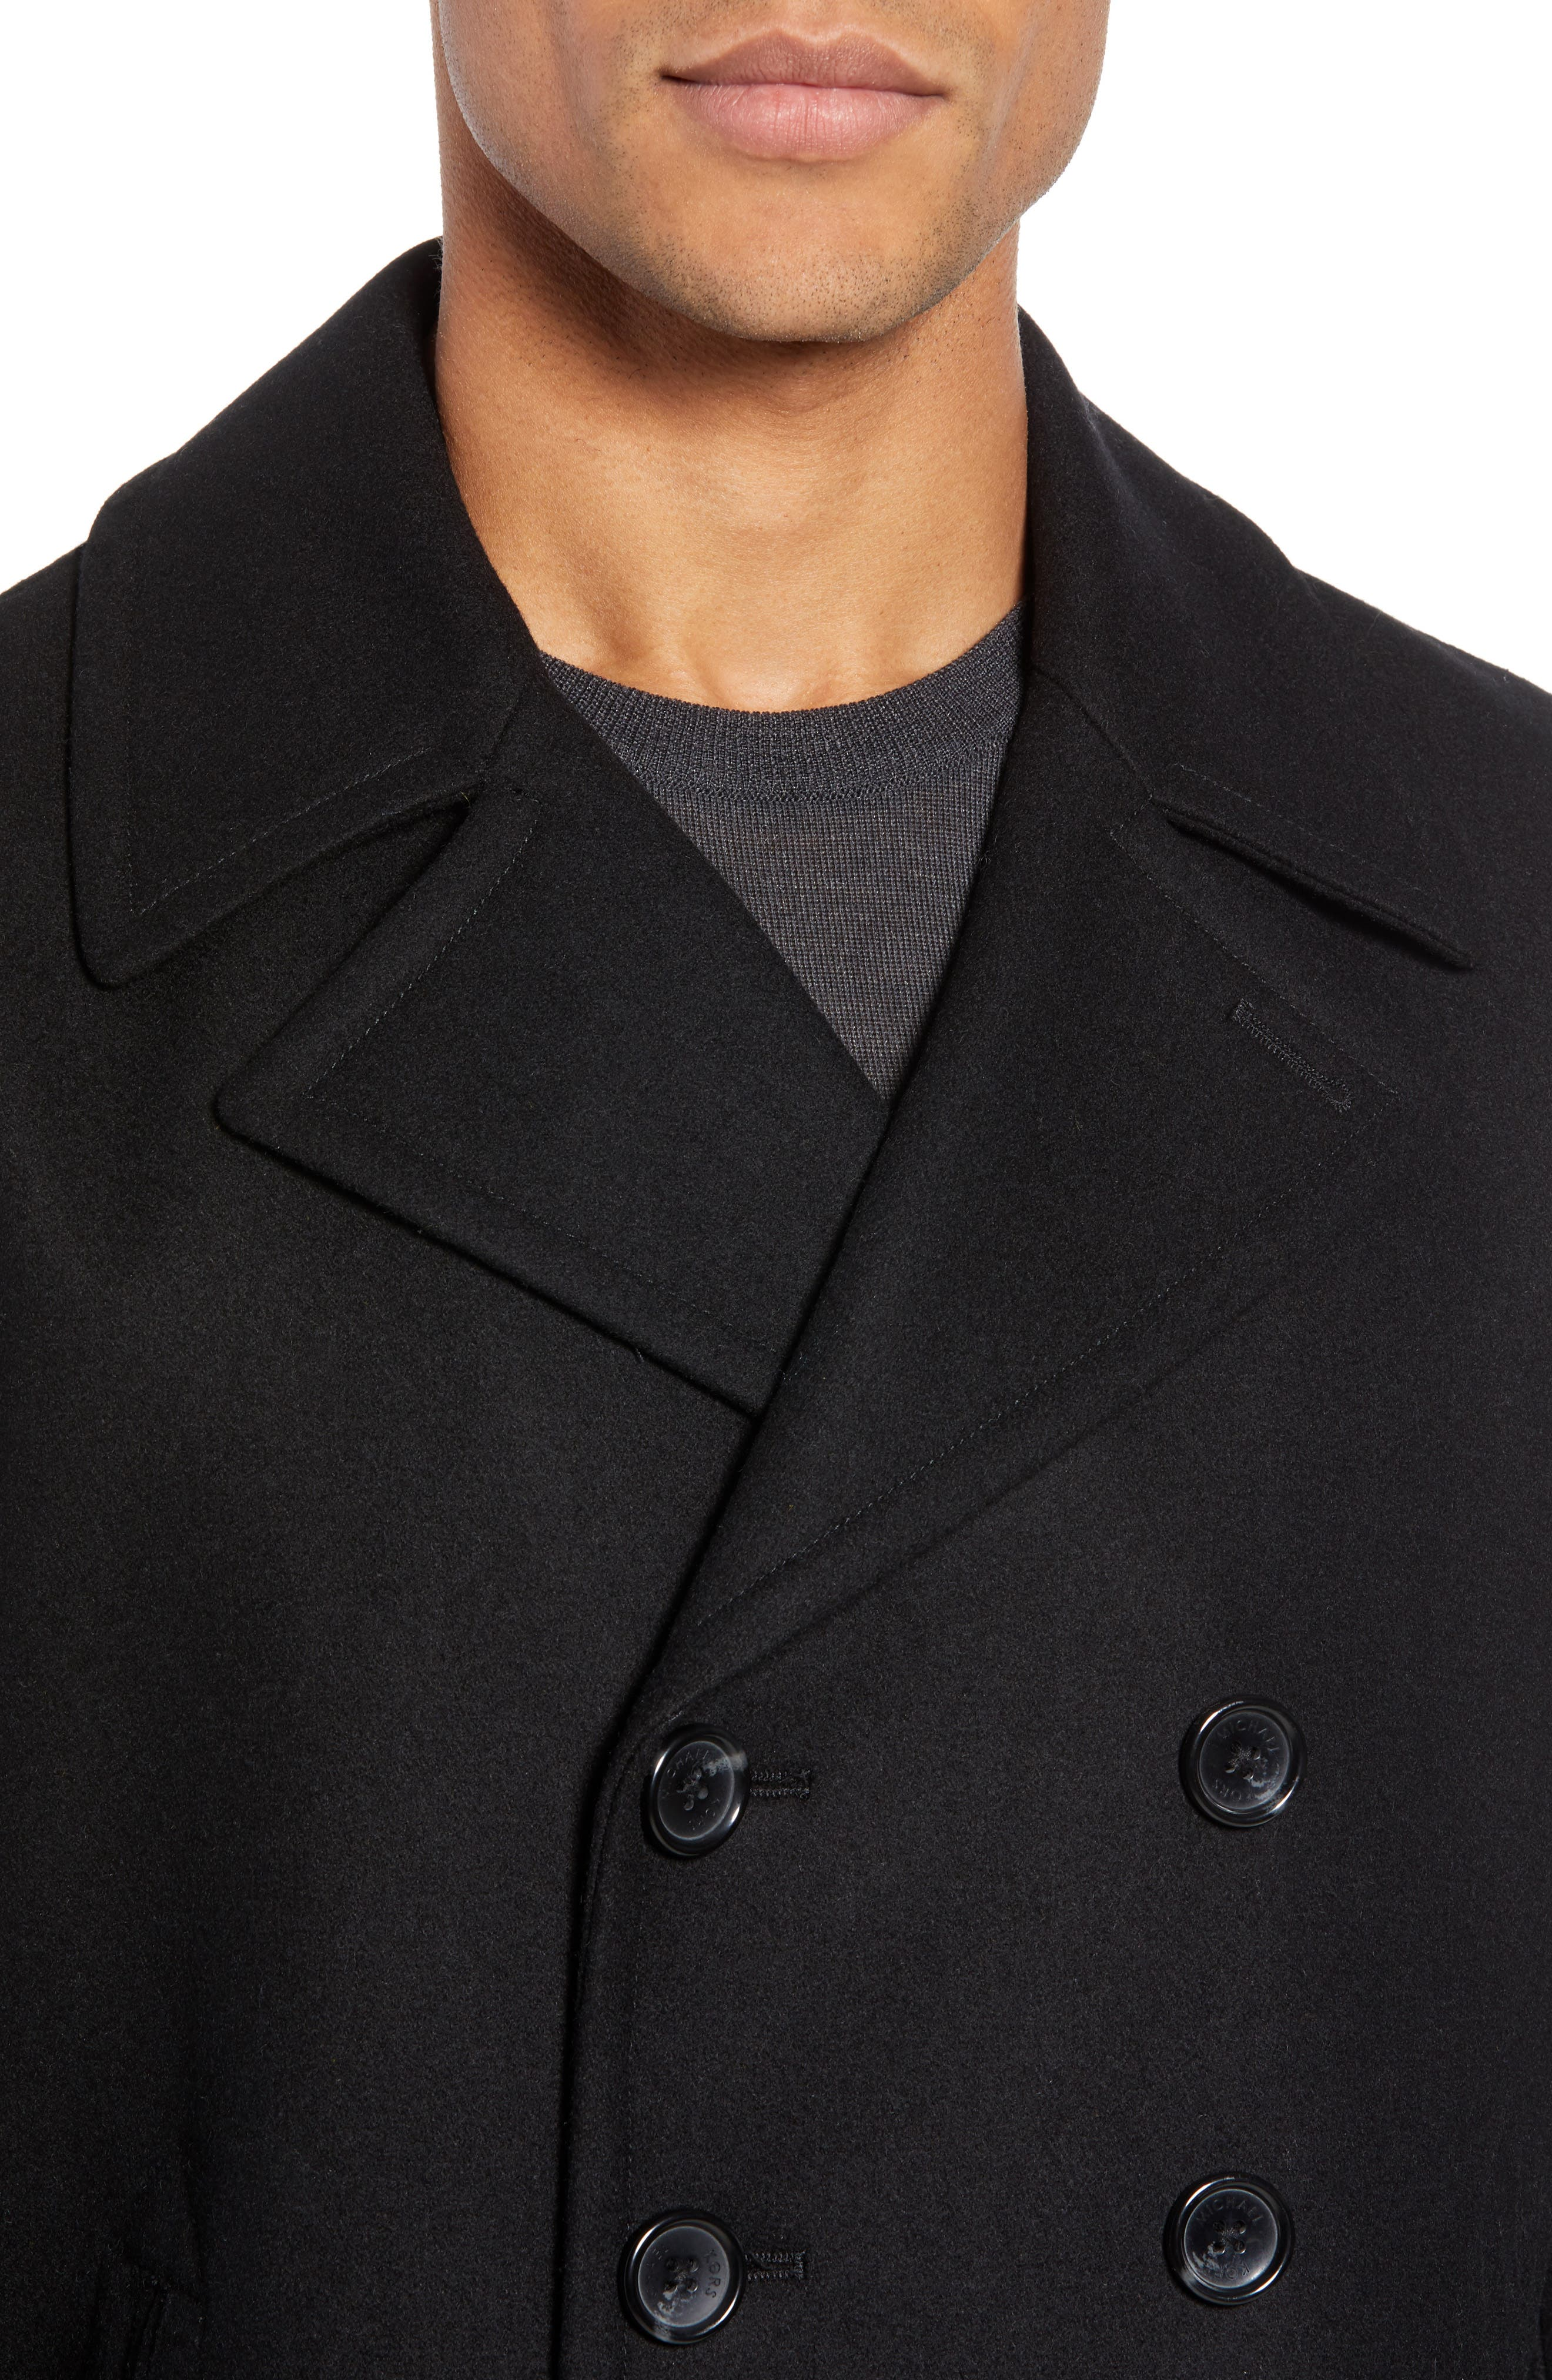 Wool Blend Double Breasted Peacoat,                             Alternate thumbnail 66, color,